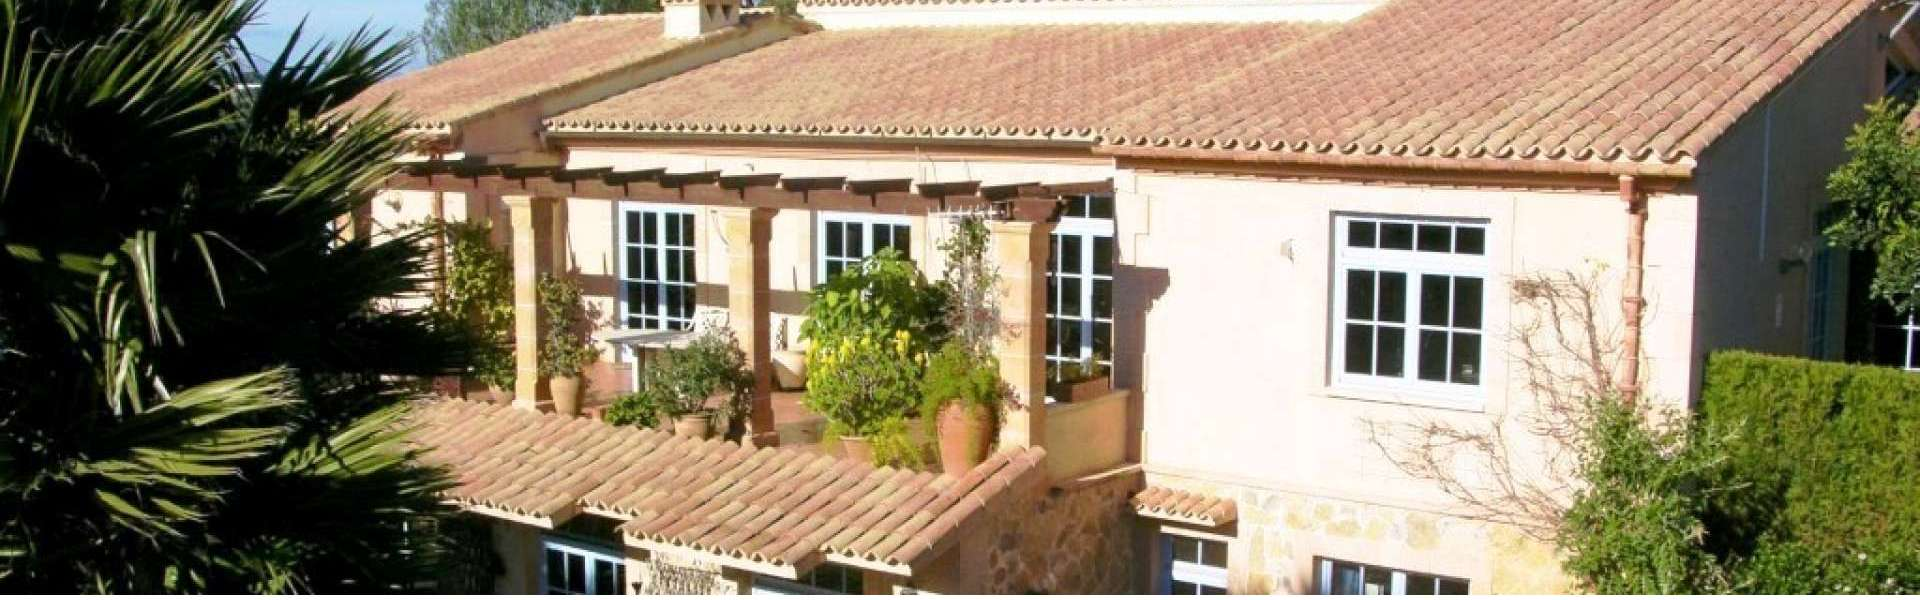 Spacious Estate with maximum of privacy close to Porto Cristo